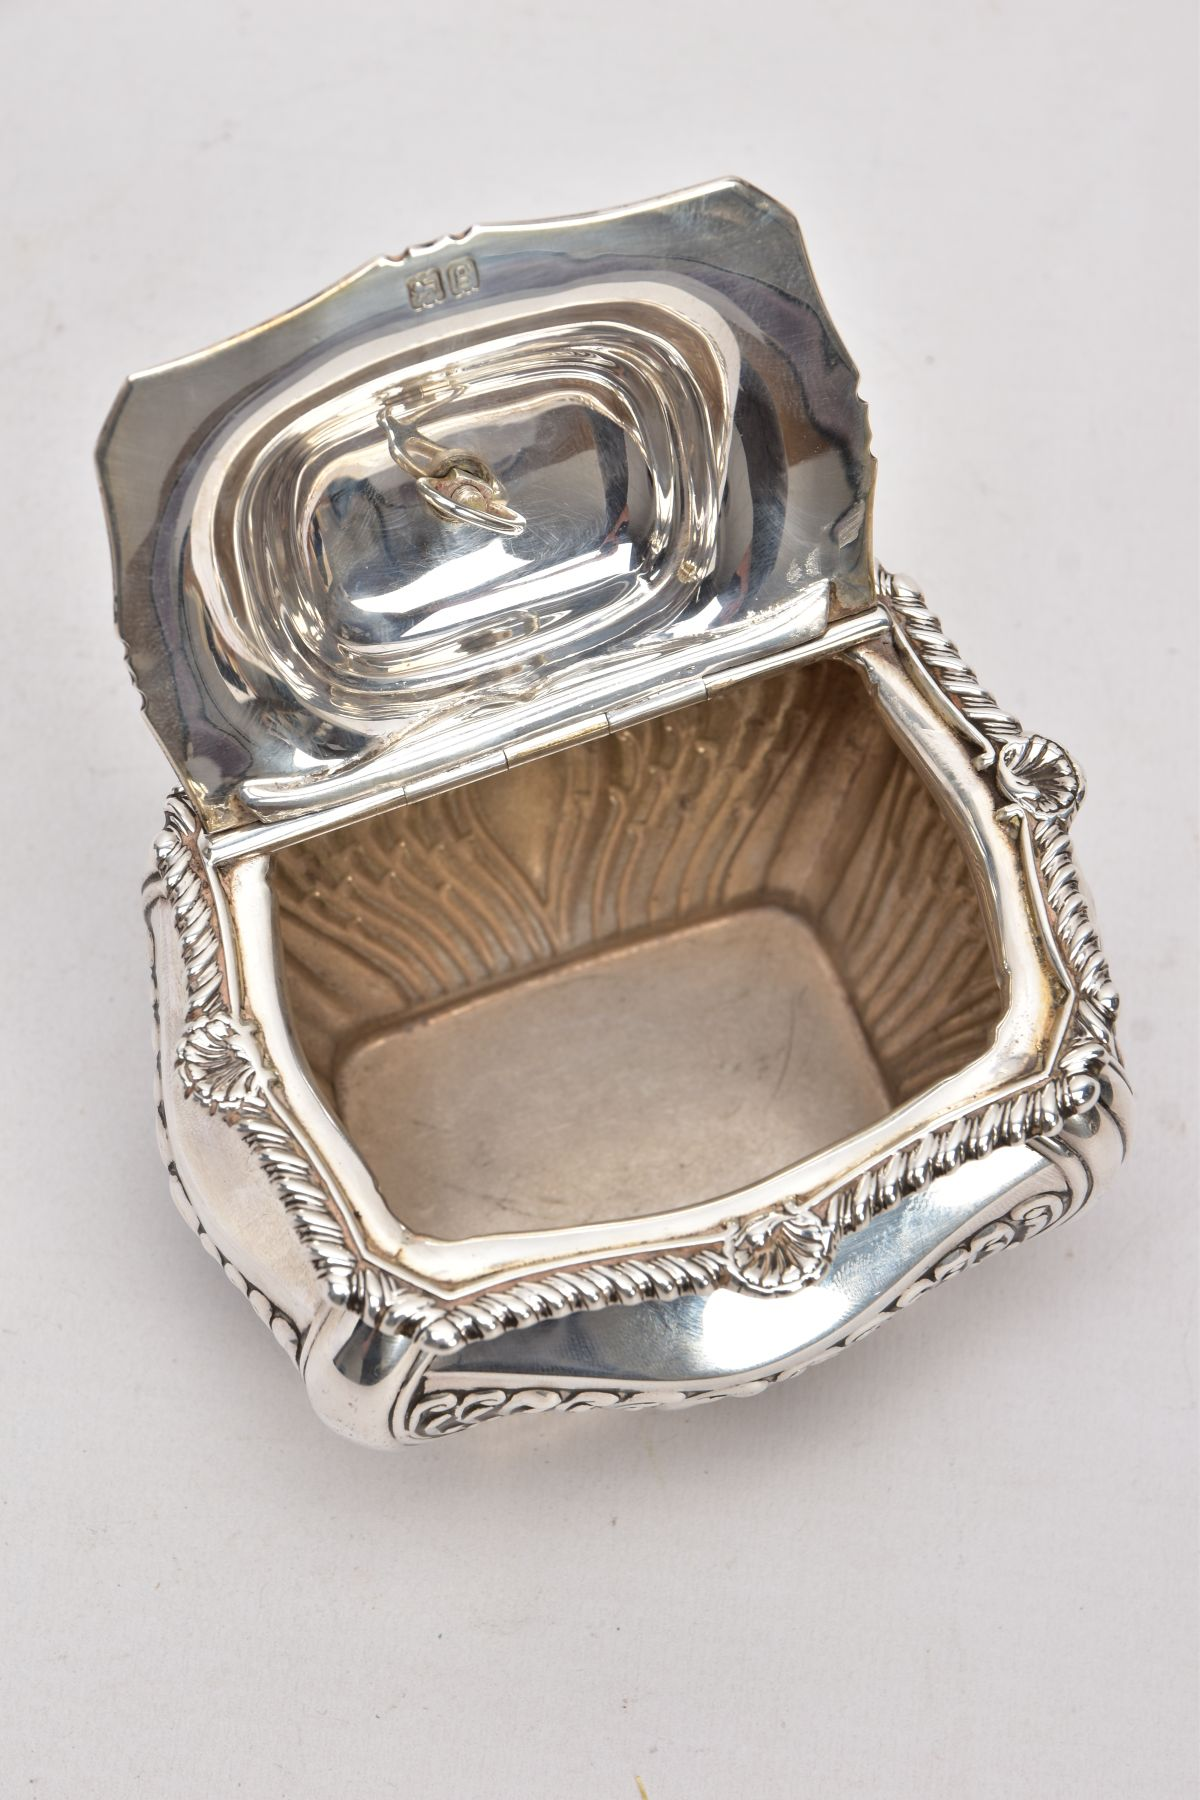 AN EDWARDIAN SILVER TEA CADDY, bomb shaped sucrier with hinged cover, gadrooned and shell cast - Image 3 of 6